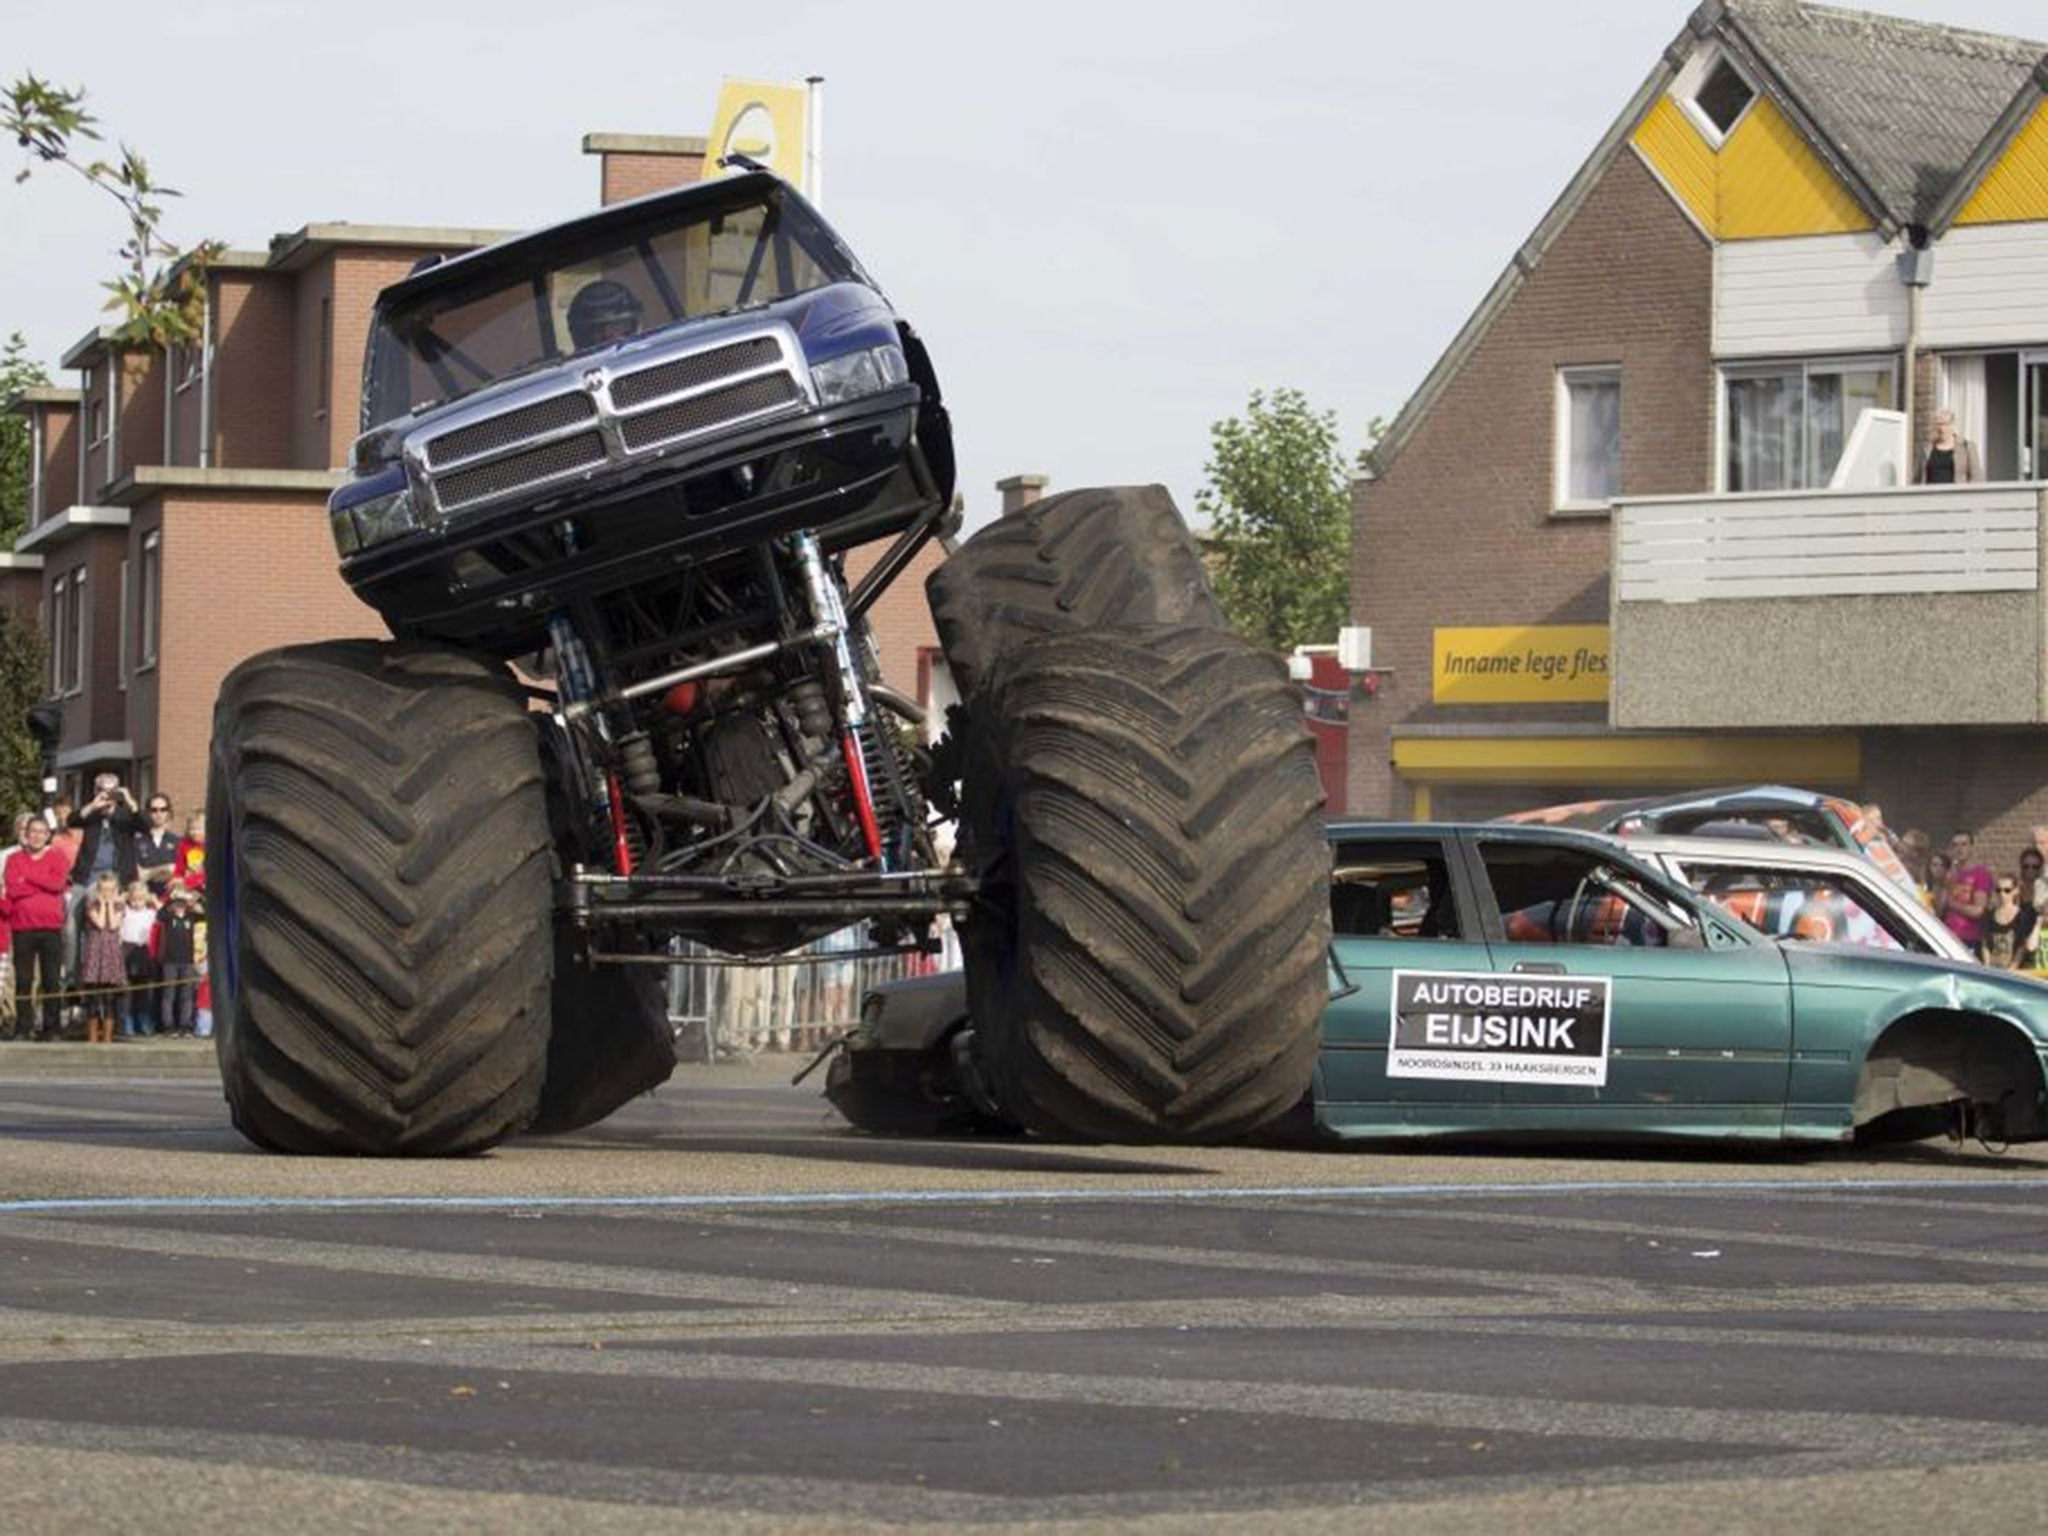 Monster Truck Kills Two After Careering Into Crowd At Car Show